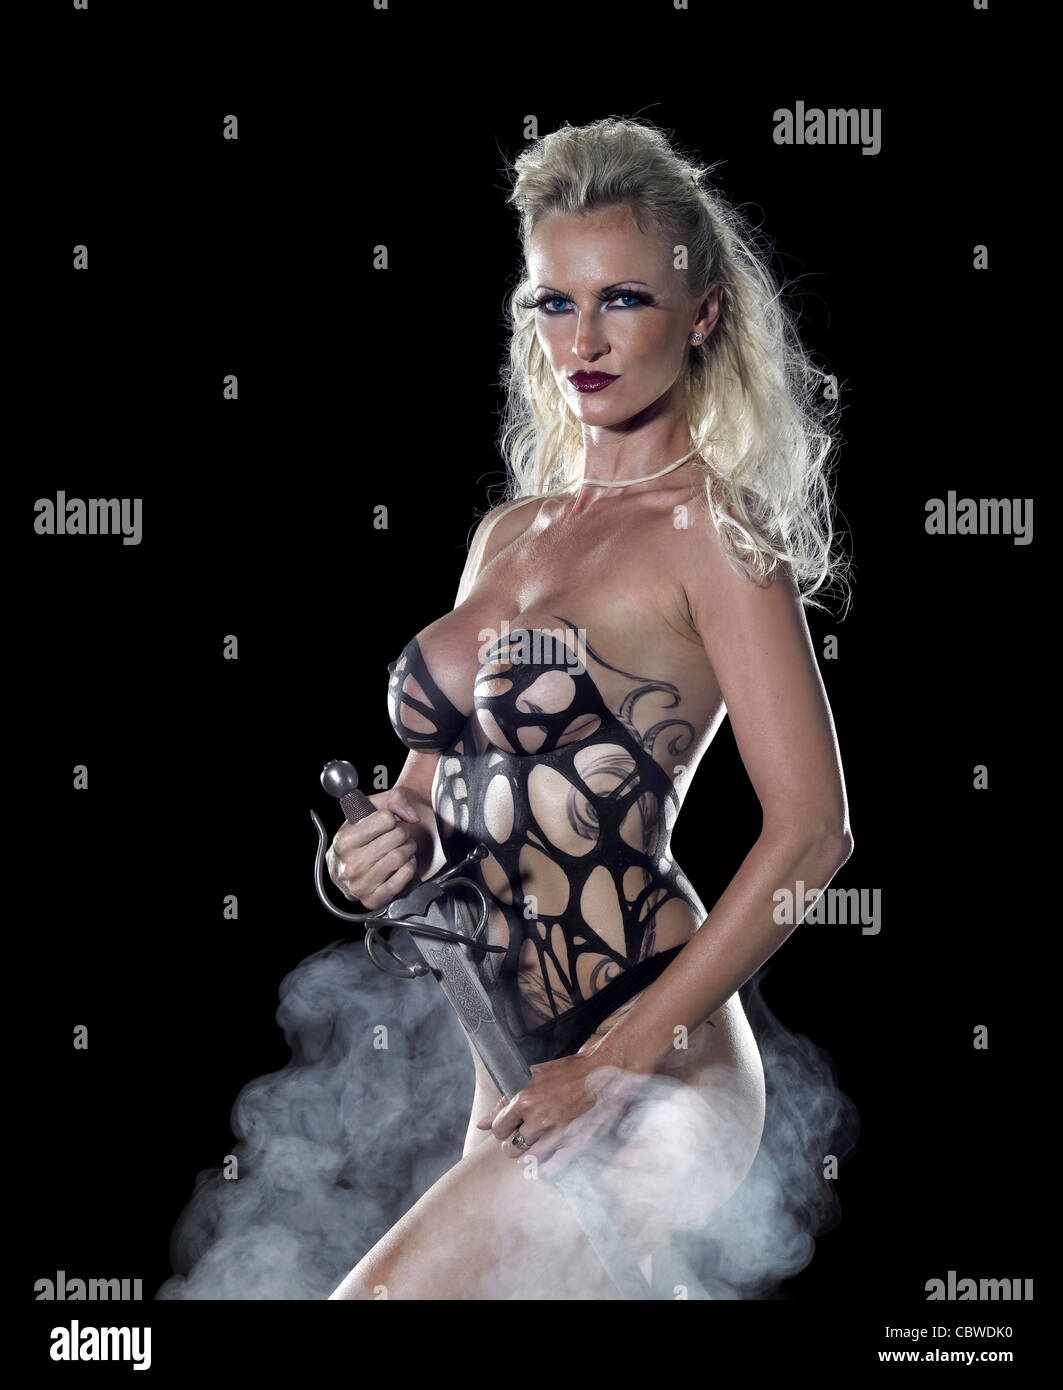 bodypainted blond woman posing in dark back and some fog - Stock Image